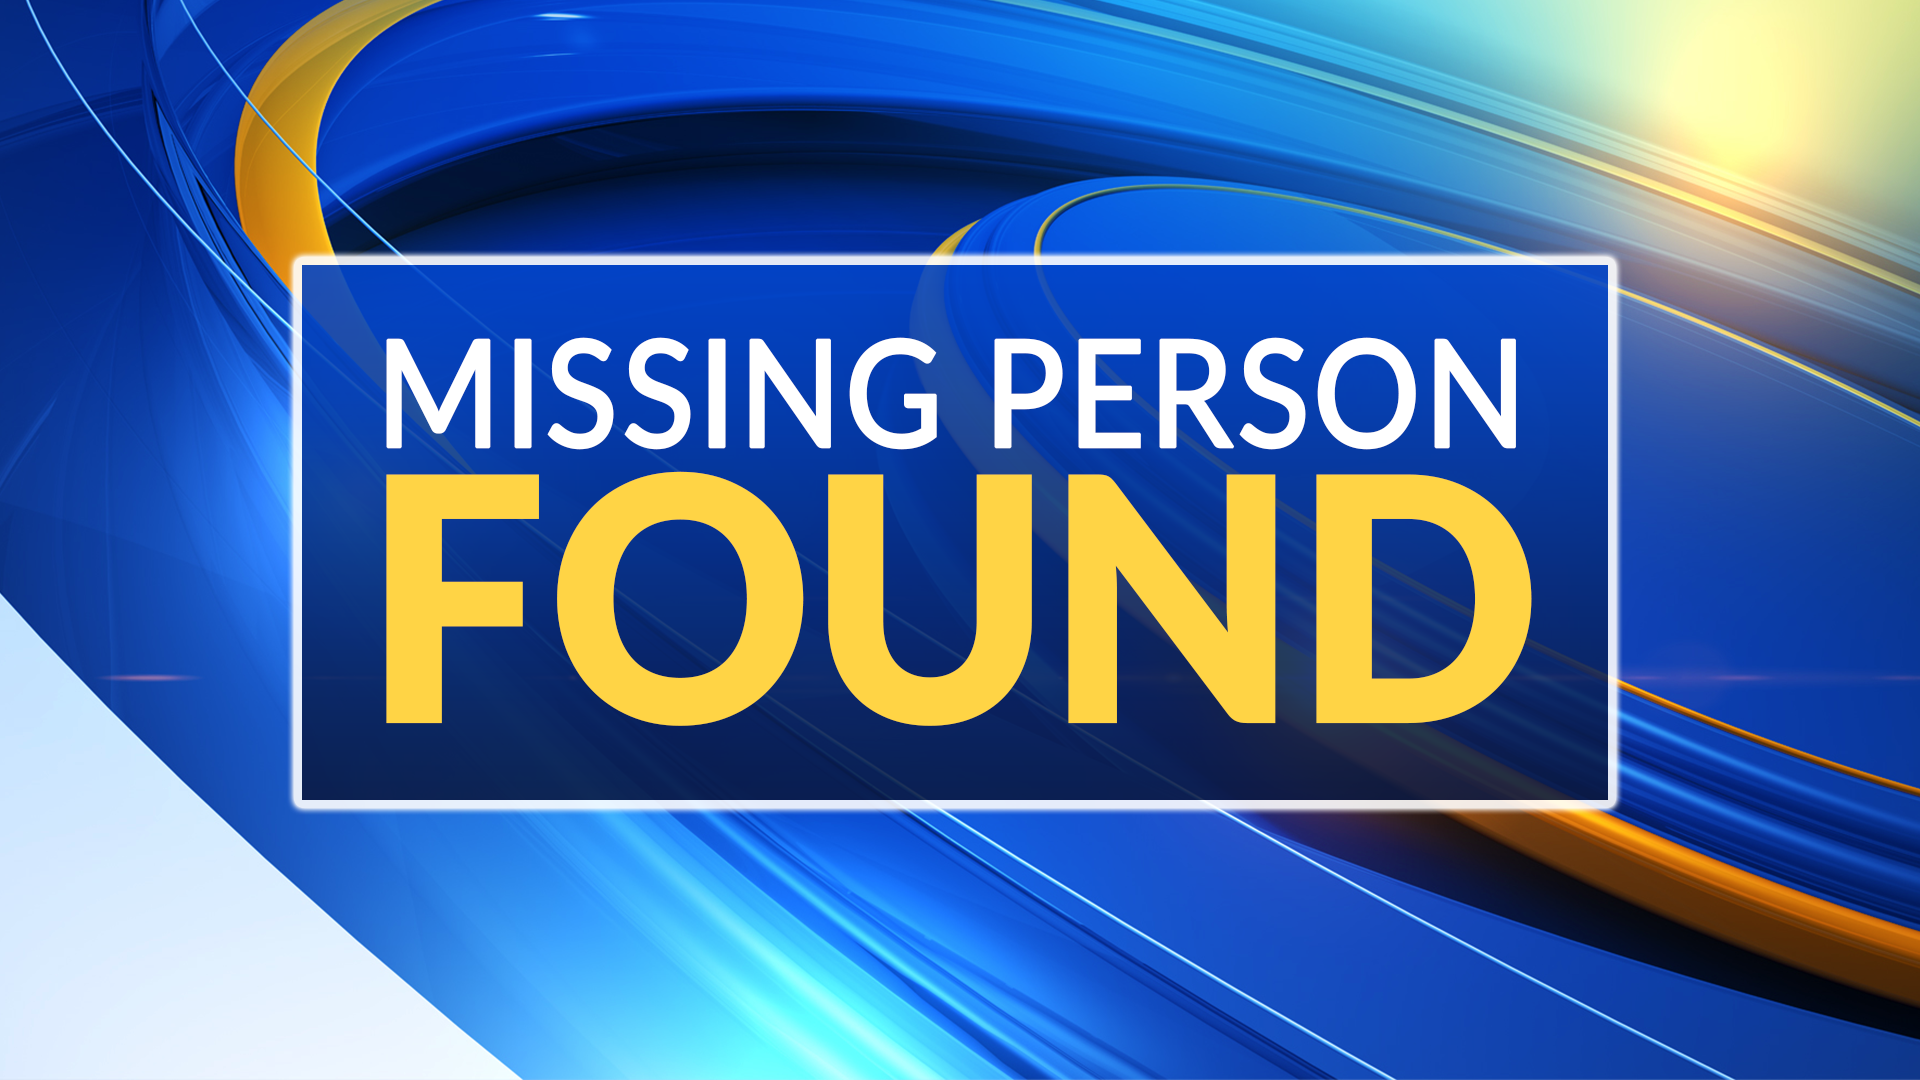 Missing Person Found